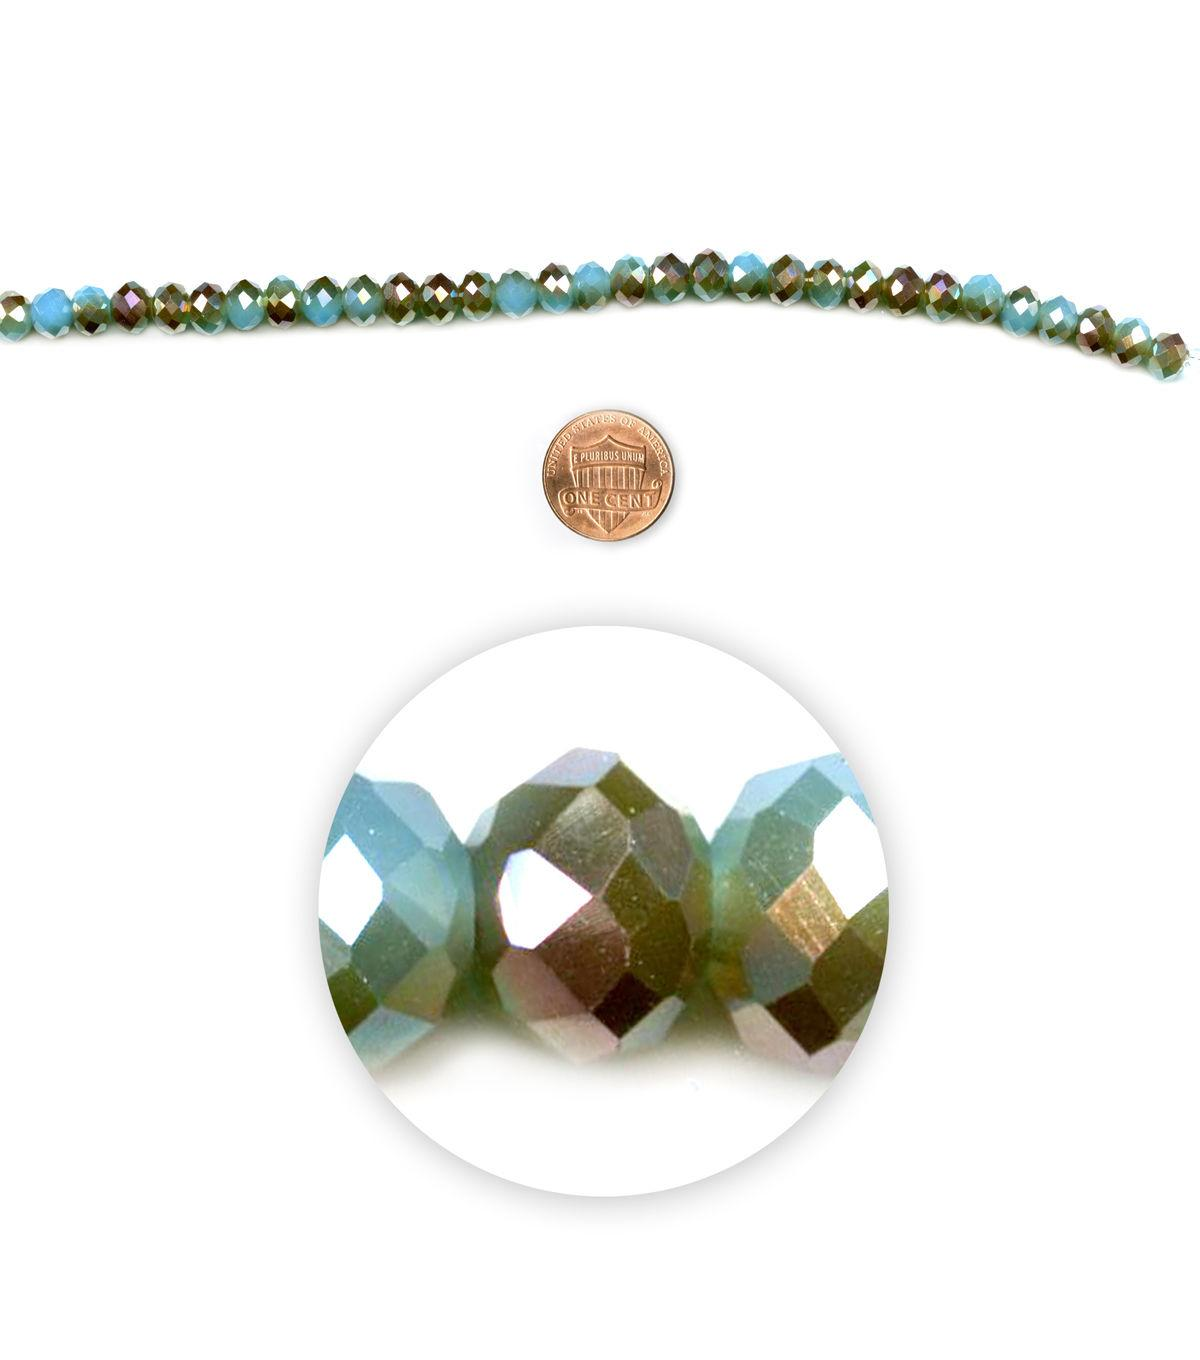 Blue Moon Beads 7 Strand 6x8mm Fire-Polished Rondelle, Turquoise/Brown